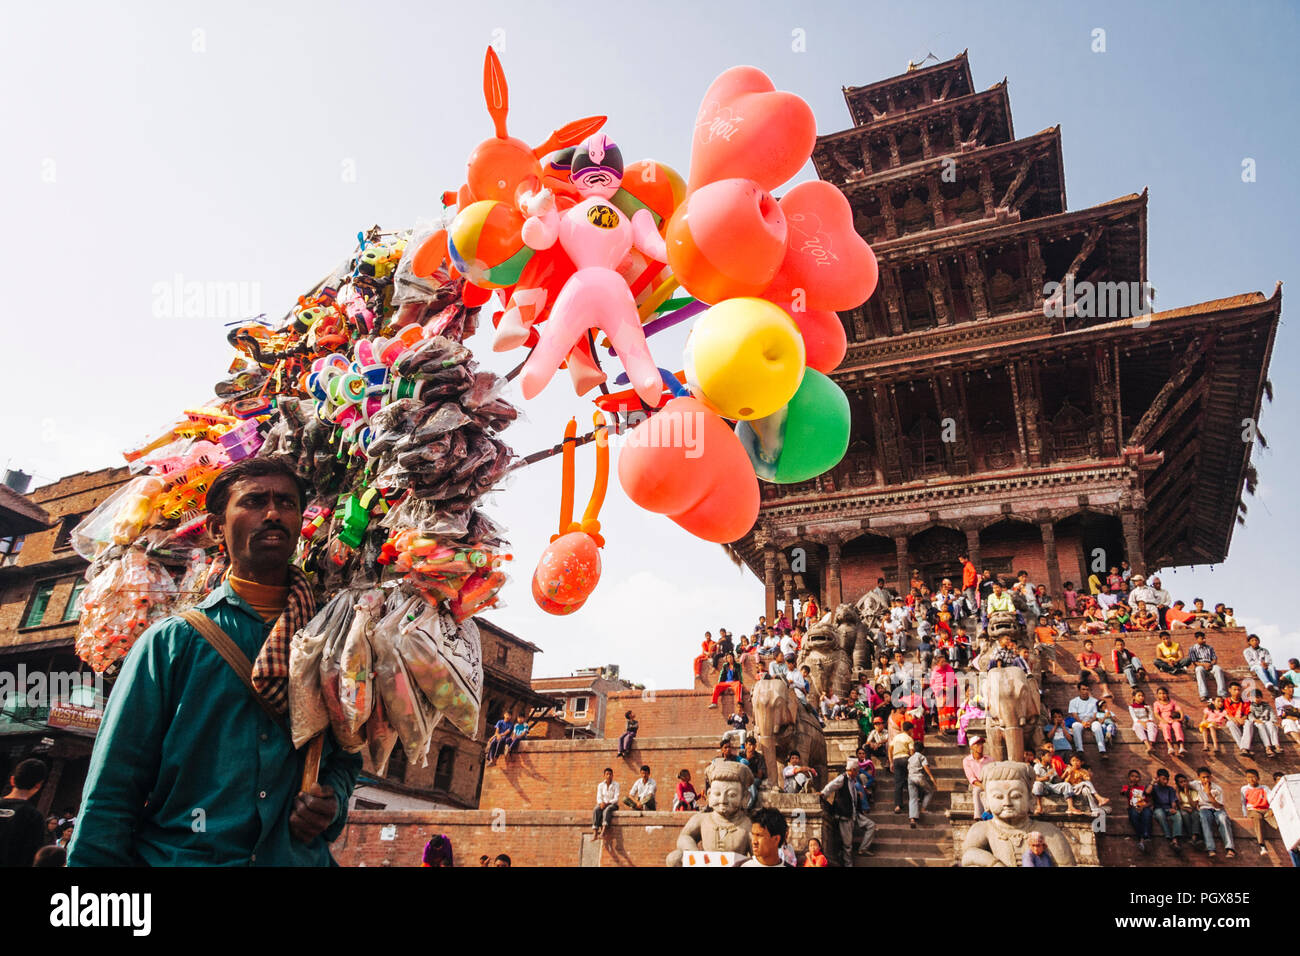 Bhaktapur, Kathmandu Valley, Bagmati, Nepal : A balloons vendor stands as a crowd of onlookers gathers at the steps of the Nyatapola temple at Taumadh - Stock Image